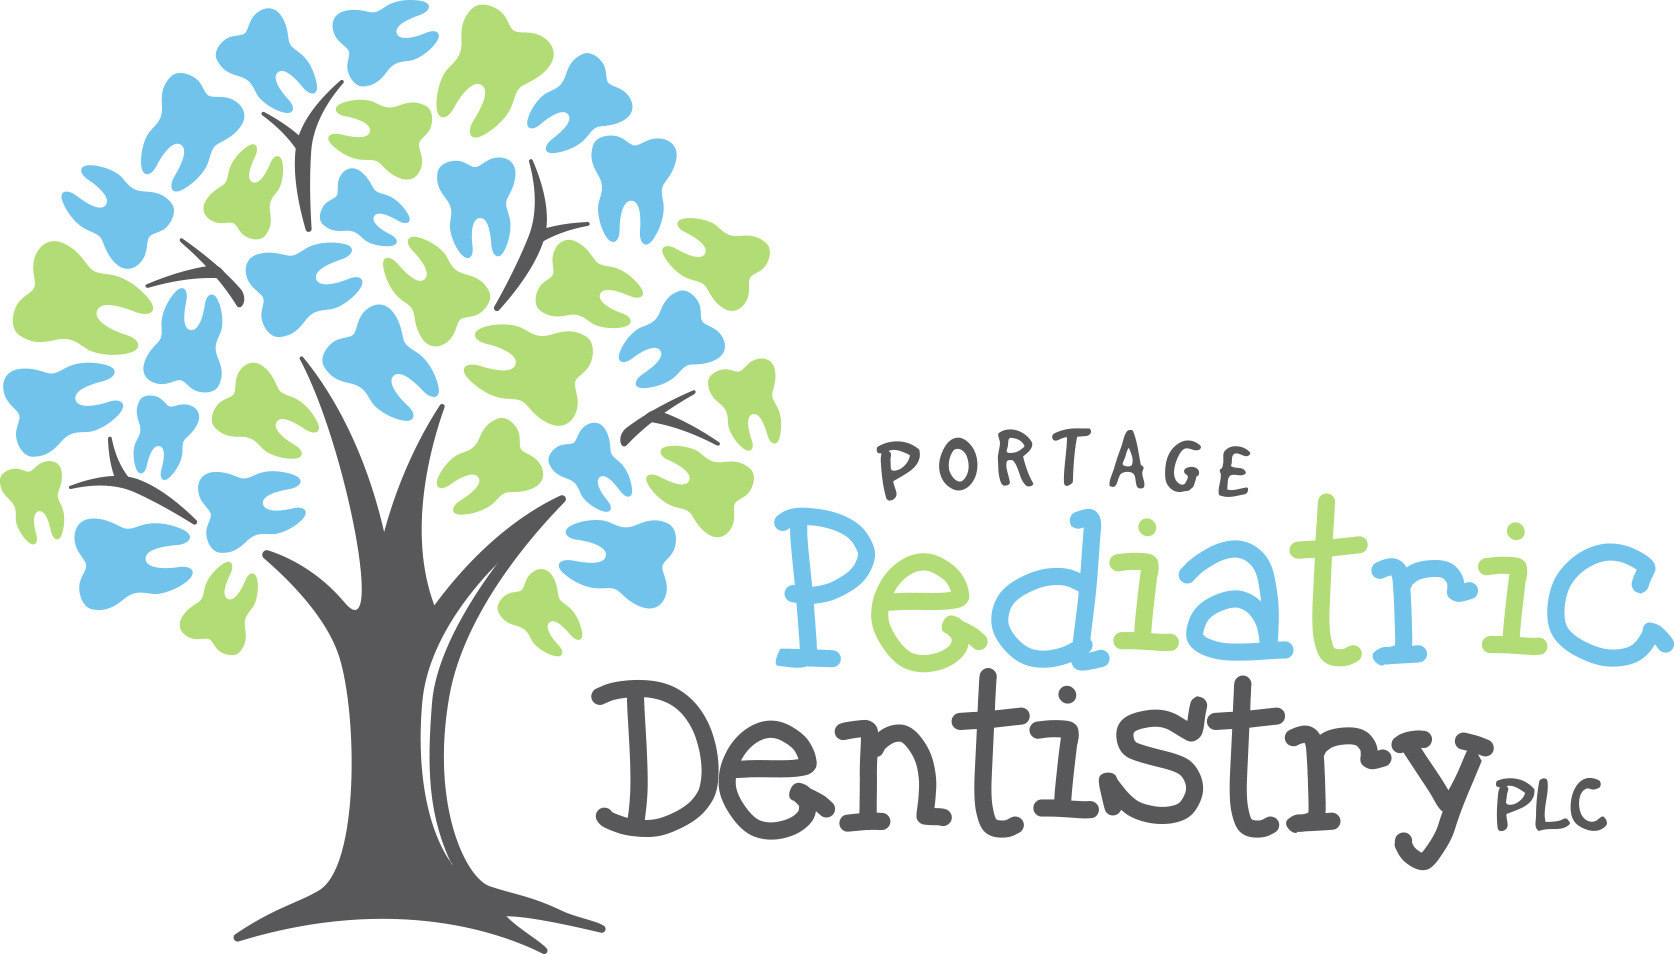 Portage Pediatric Dentistry